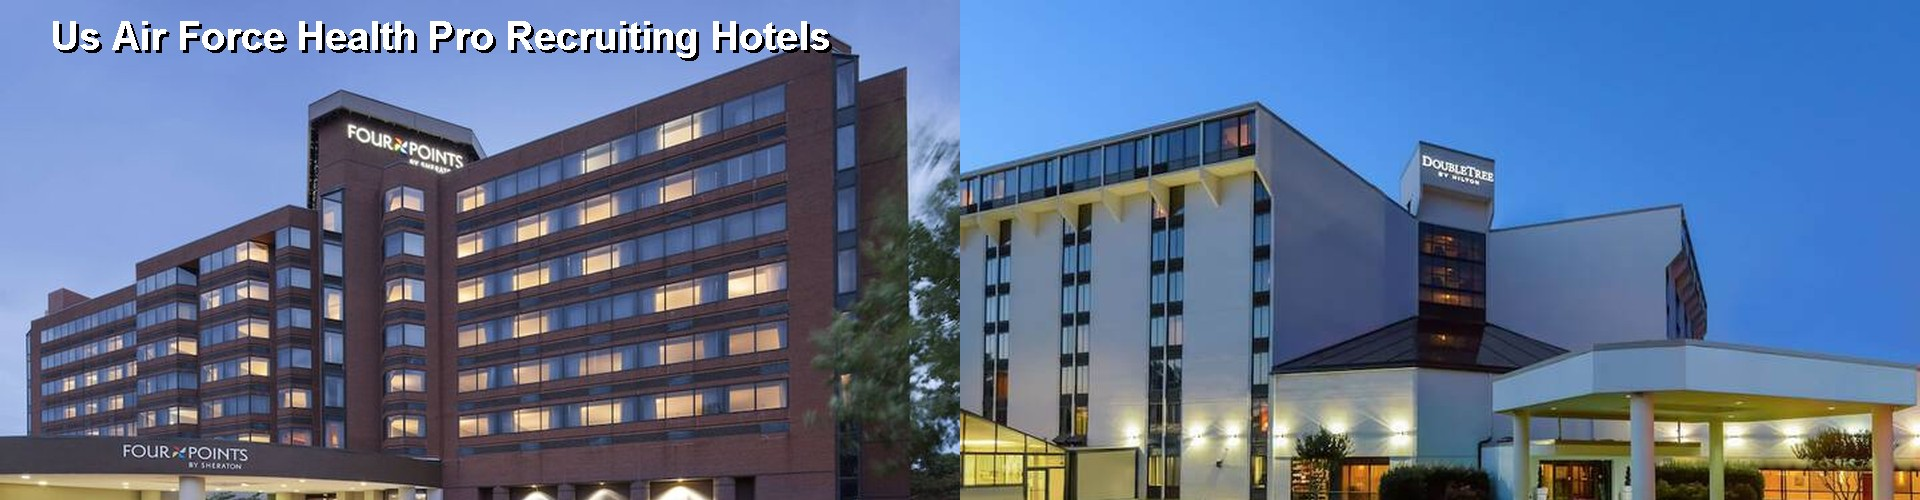 5 Best Hotels near Us Air Force Health Pro Recruiting